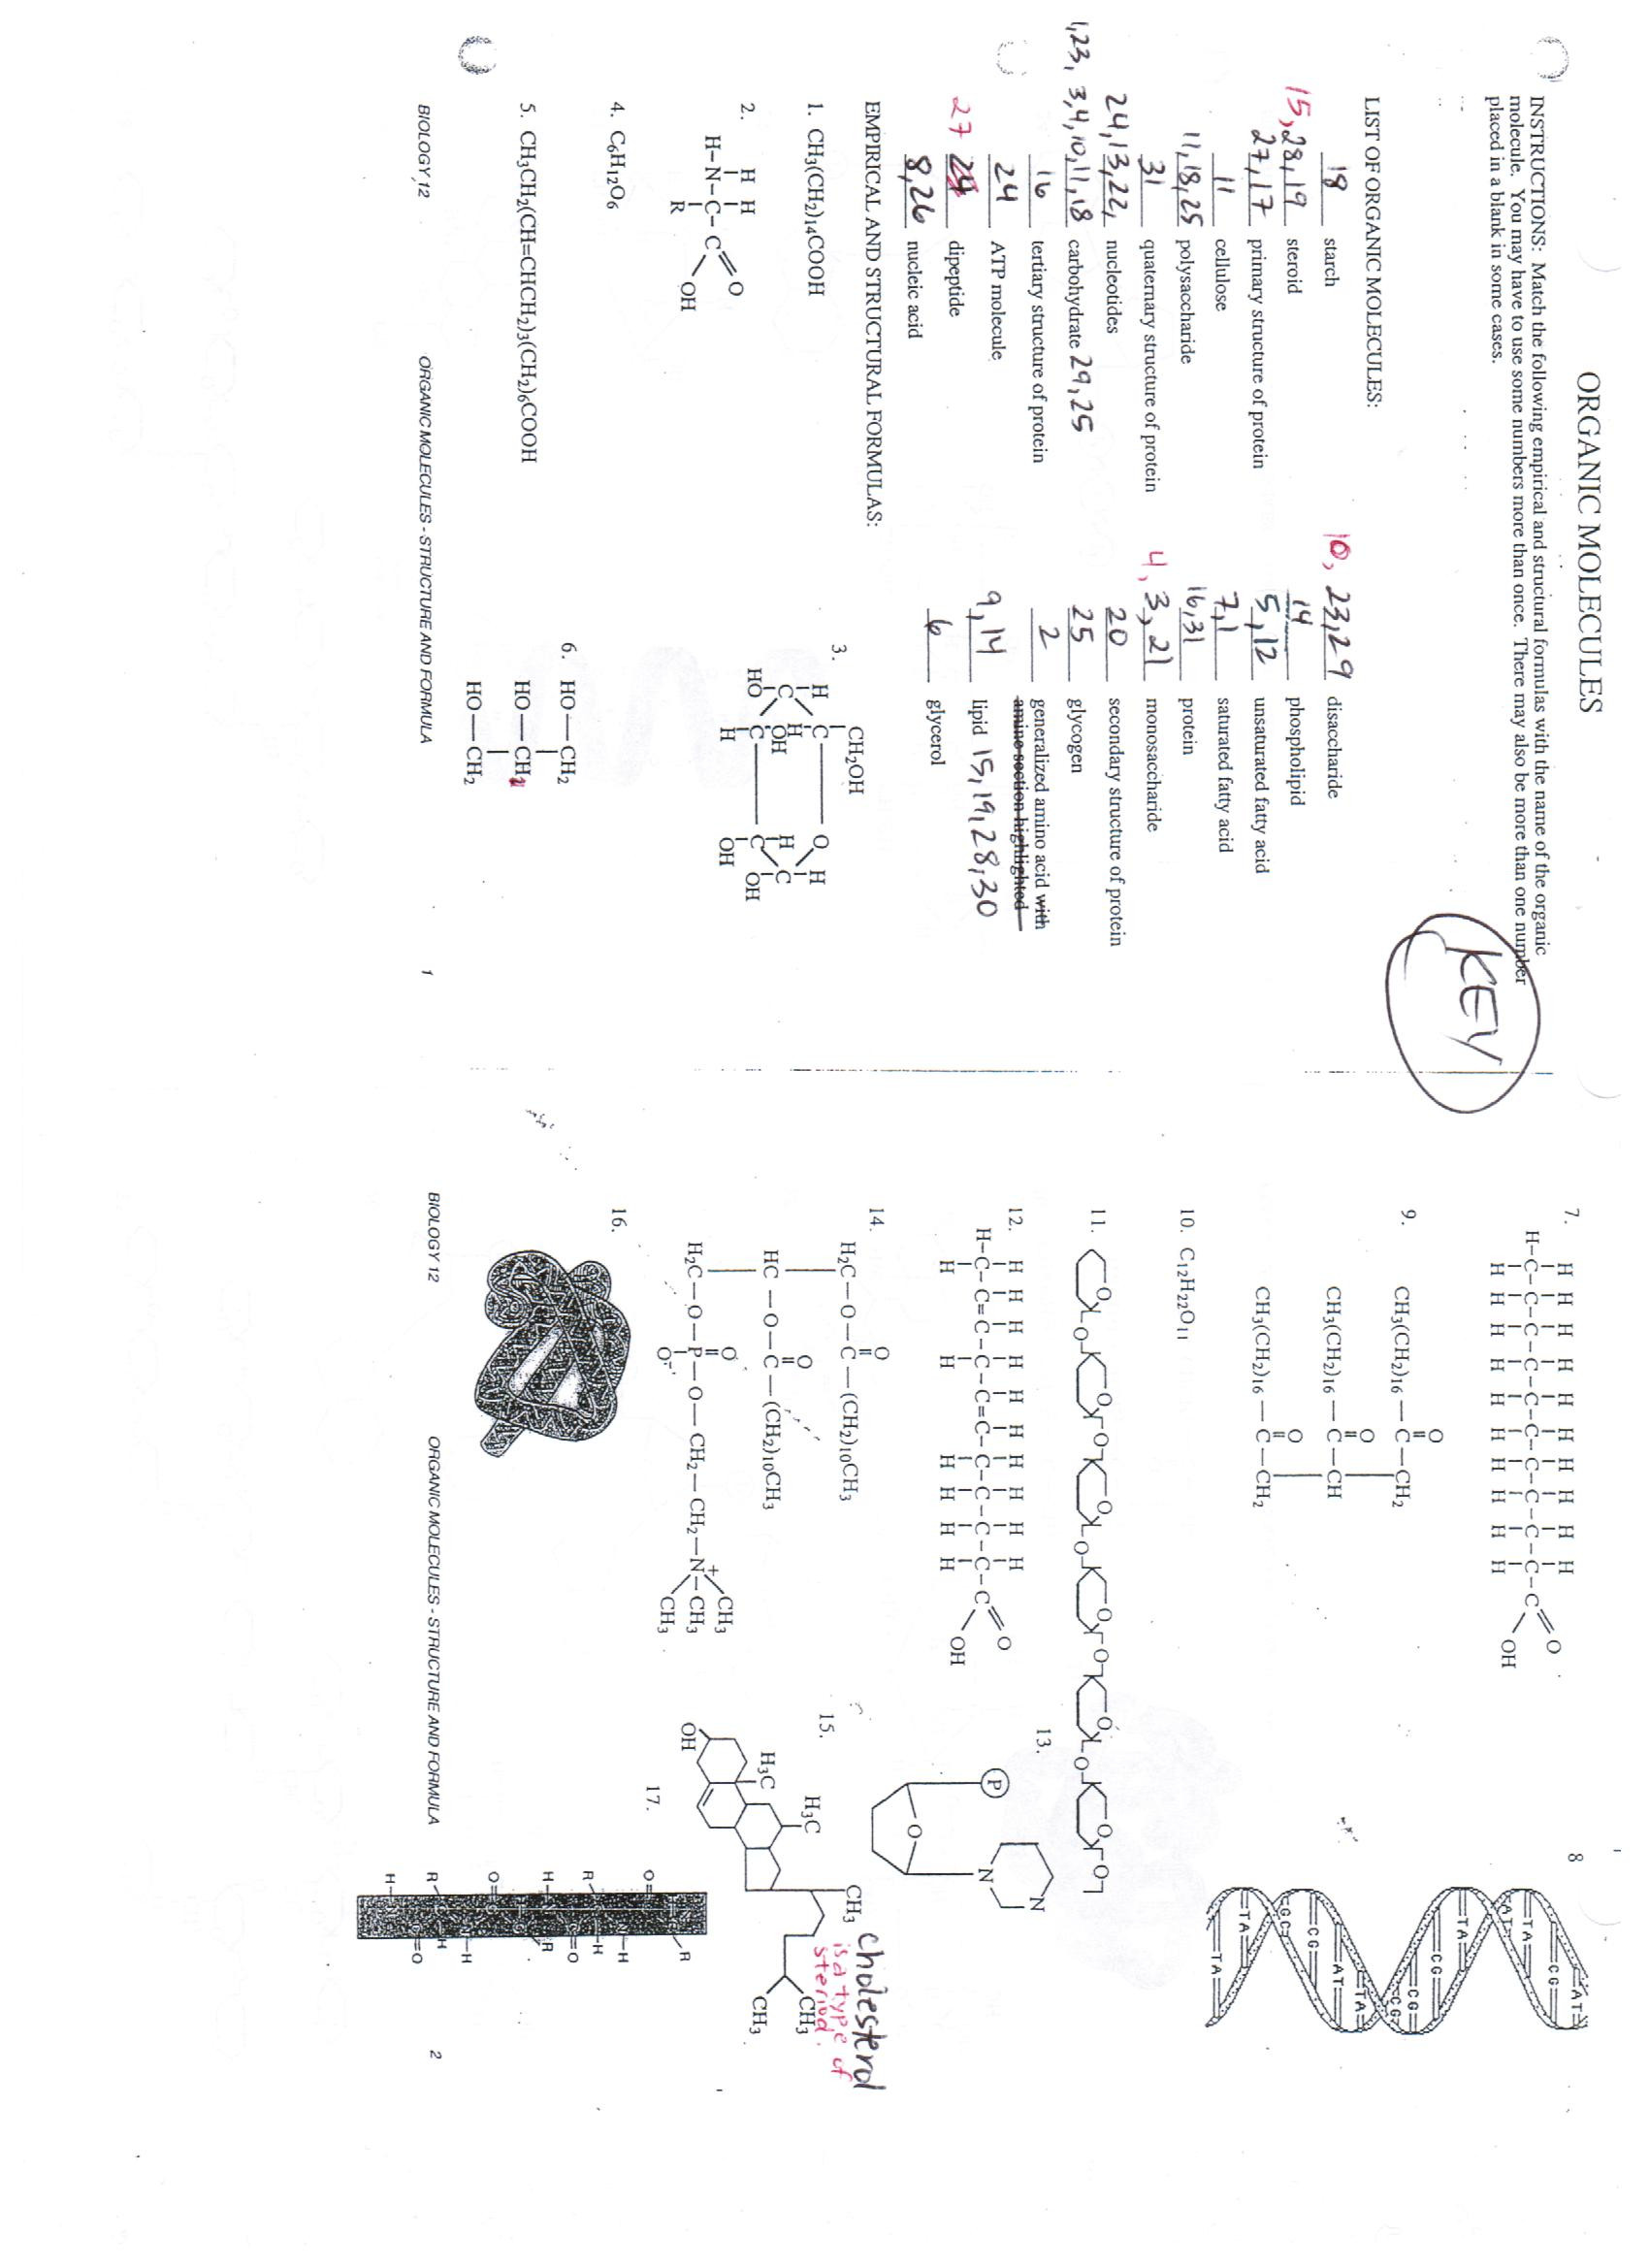 Macromolecules Worksheet 2 Answers Biomolecules Worksheet Answers